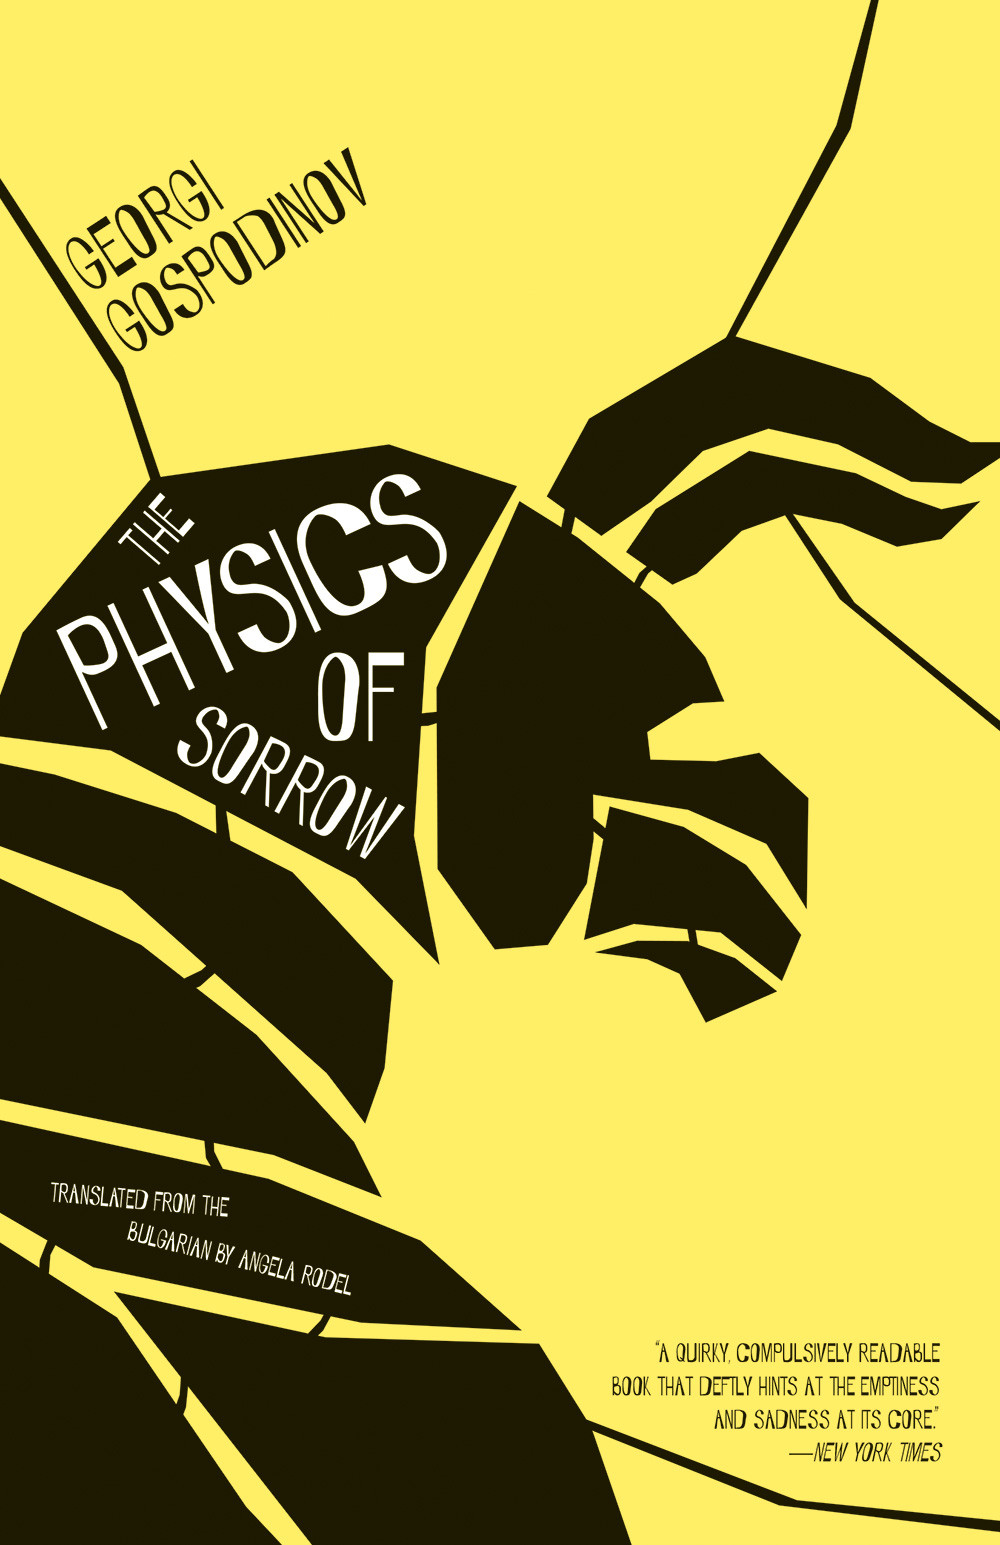 The Physics of Sorrow  by  Georgi Gospodinov  tr.  Angela Rodel  (Open Letter, April 2015)